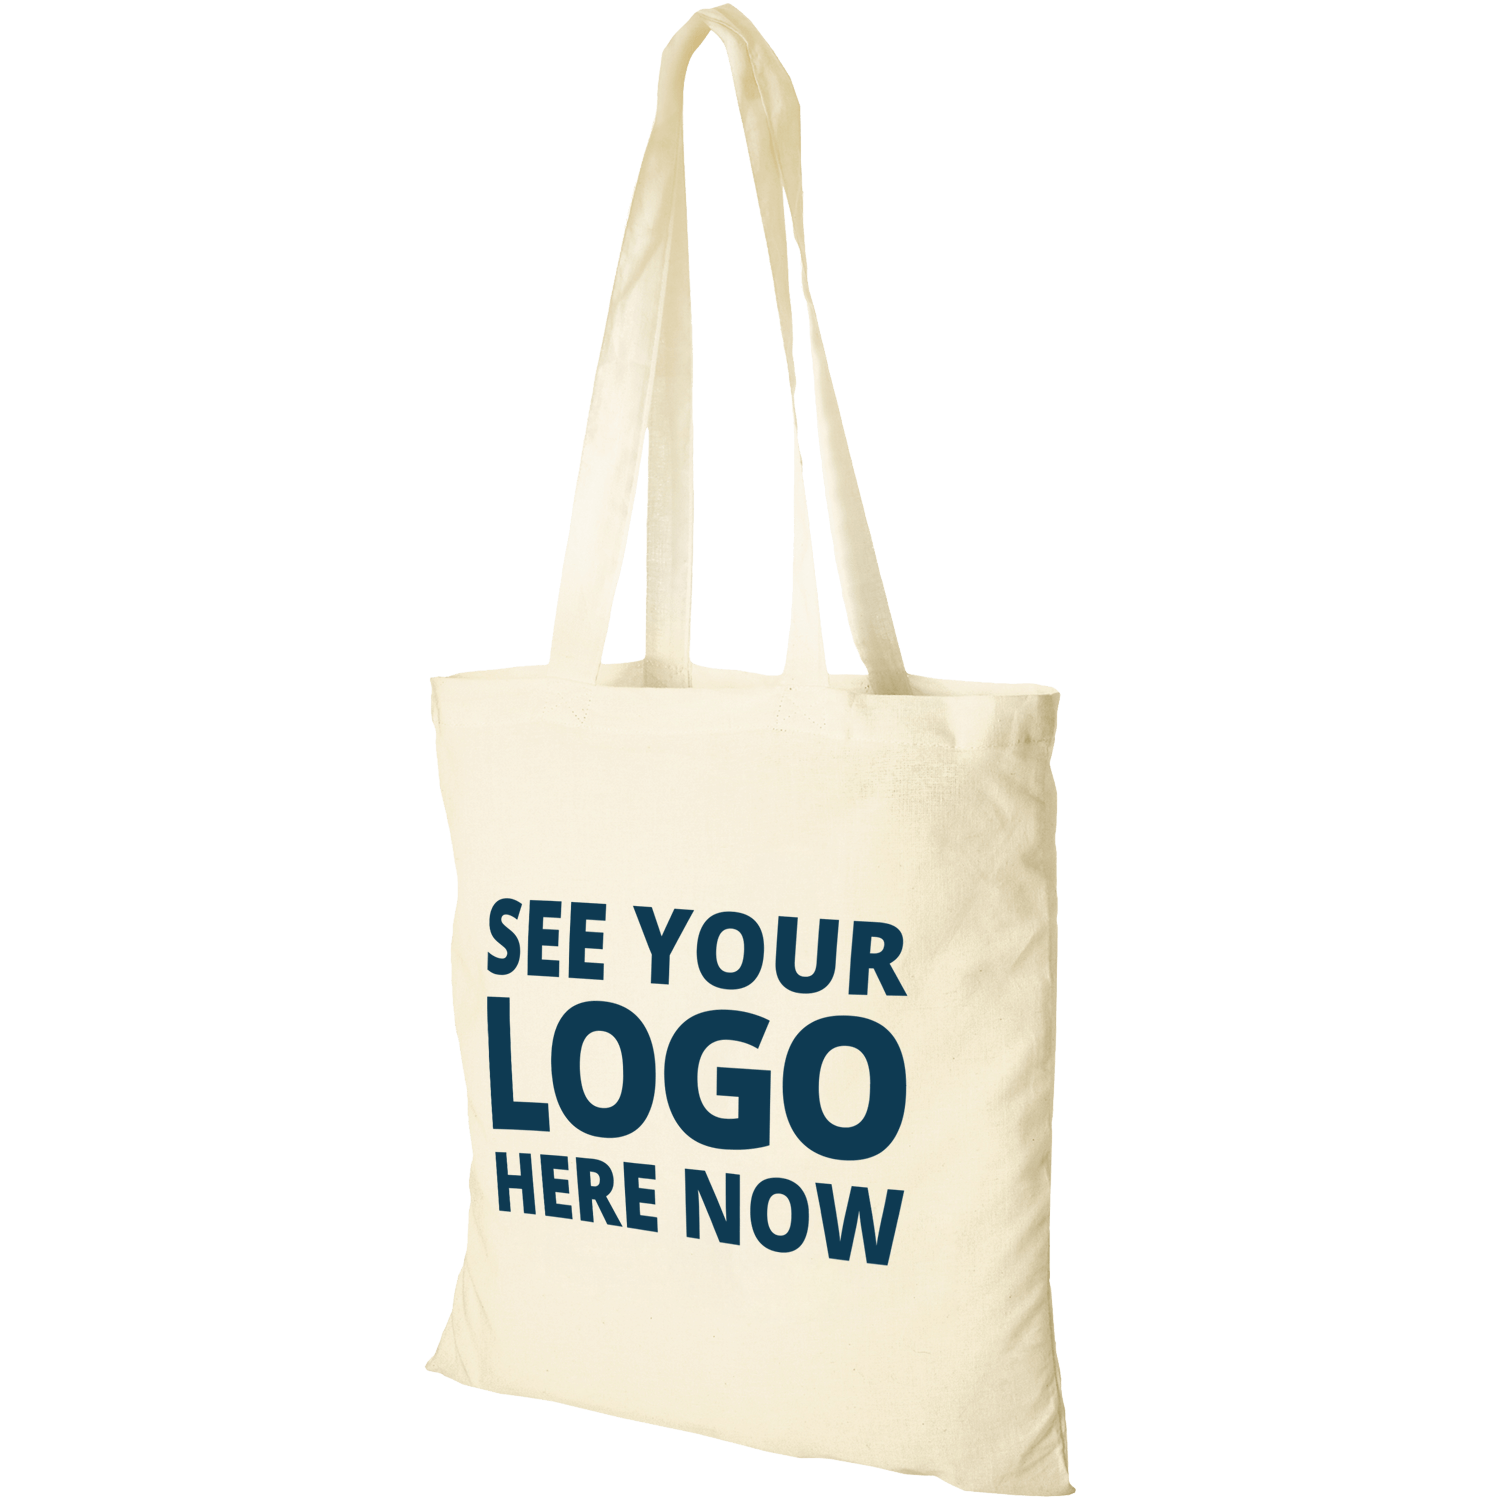 Cotton Printed Tote Bags 6oz